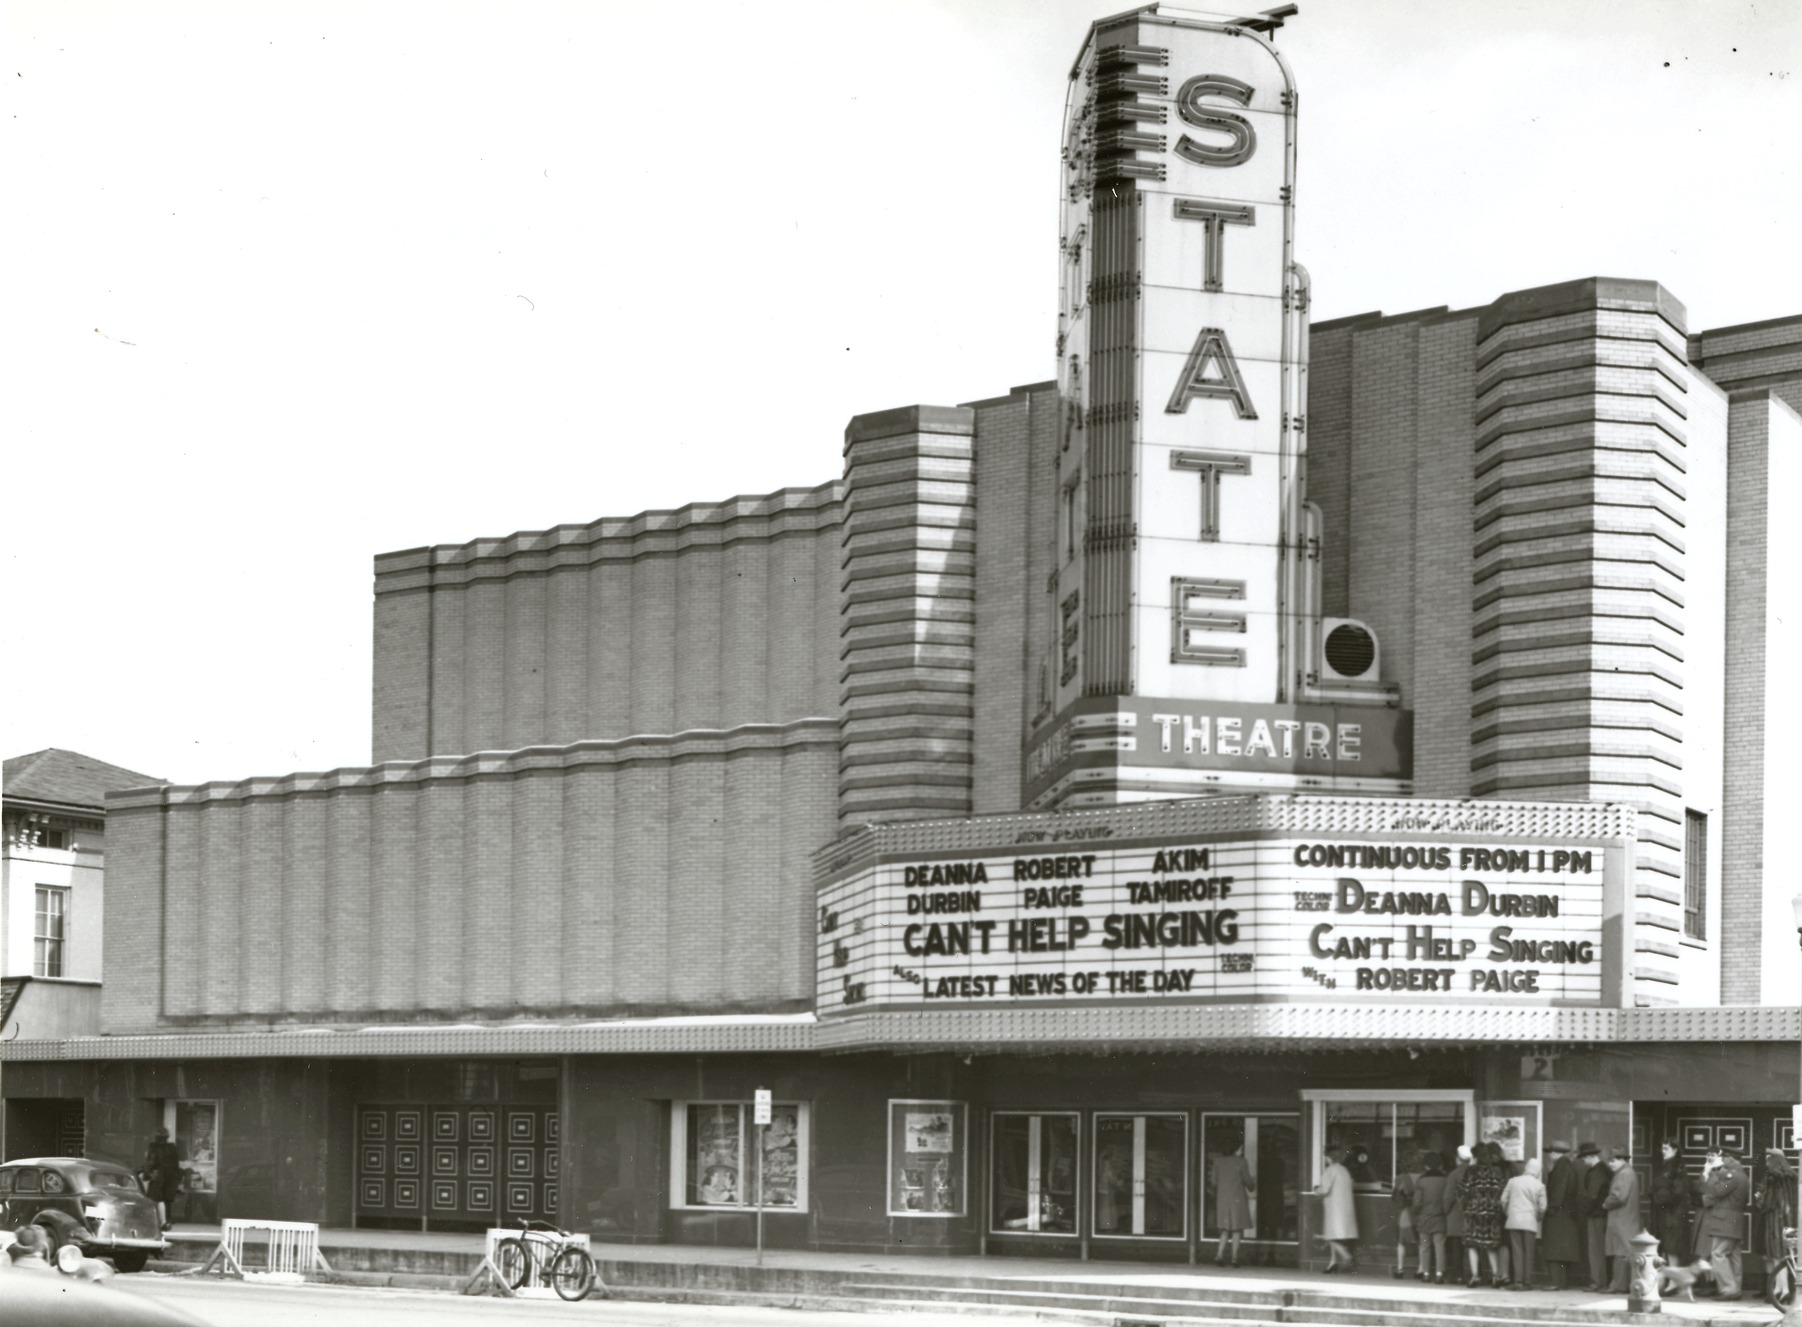 State Theater, 1940 image